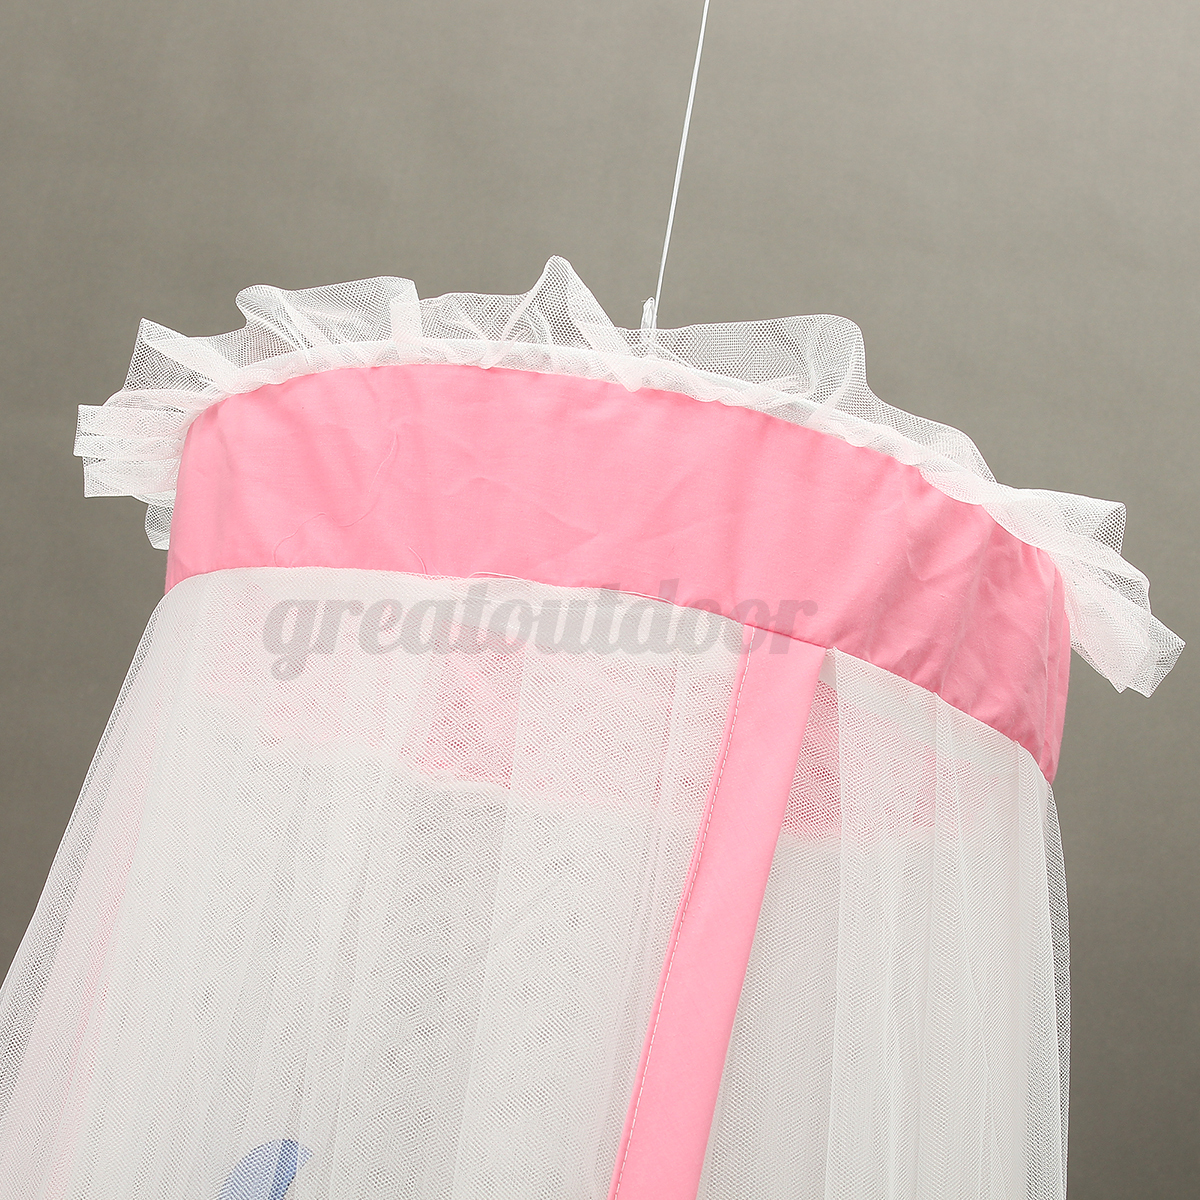 Mosquito-Net-Baby-Bed-Curtain-Dome-Cot-Netting-Canopy-Drape-Stand-Crib-Holder